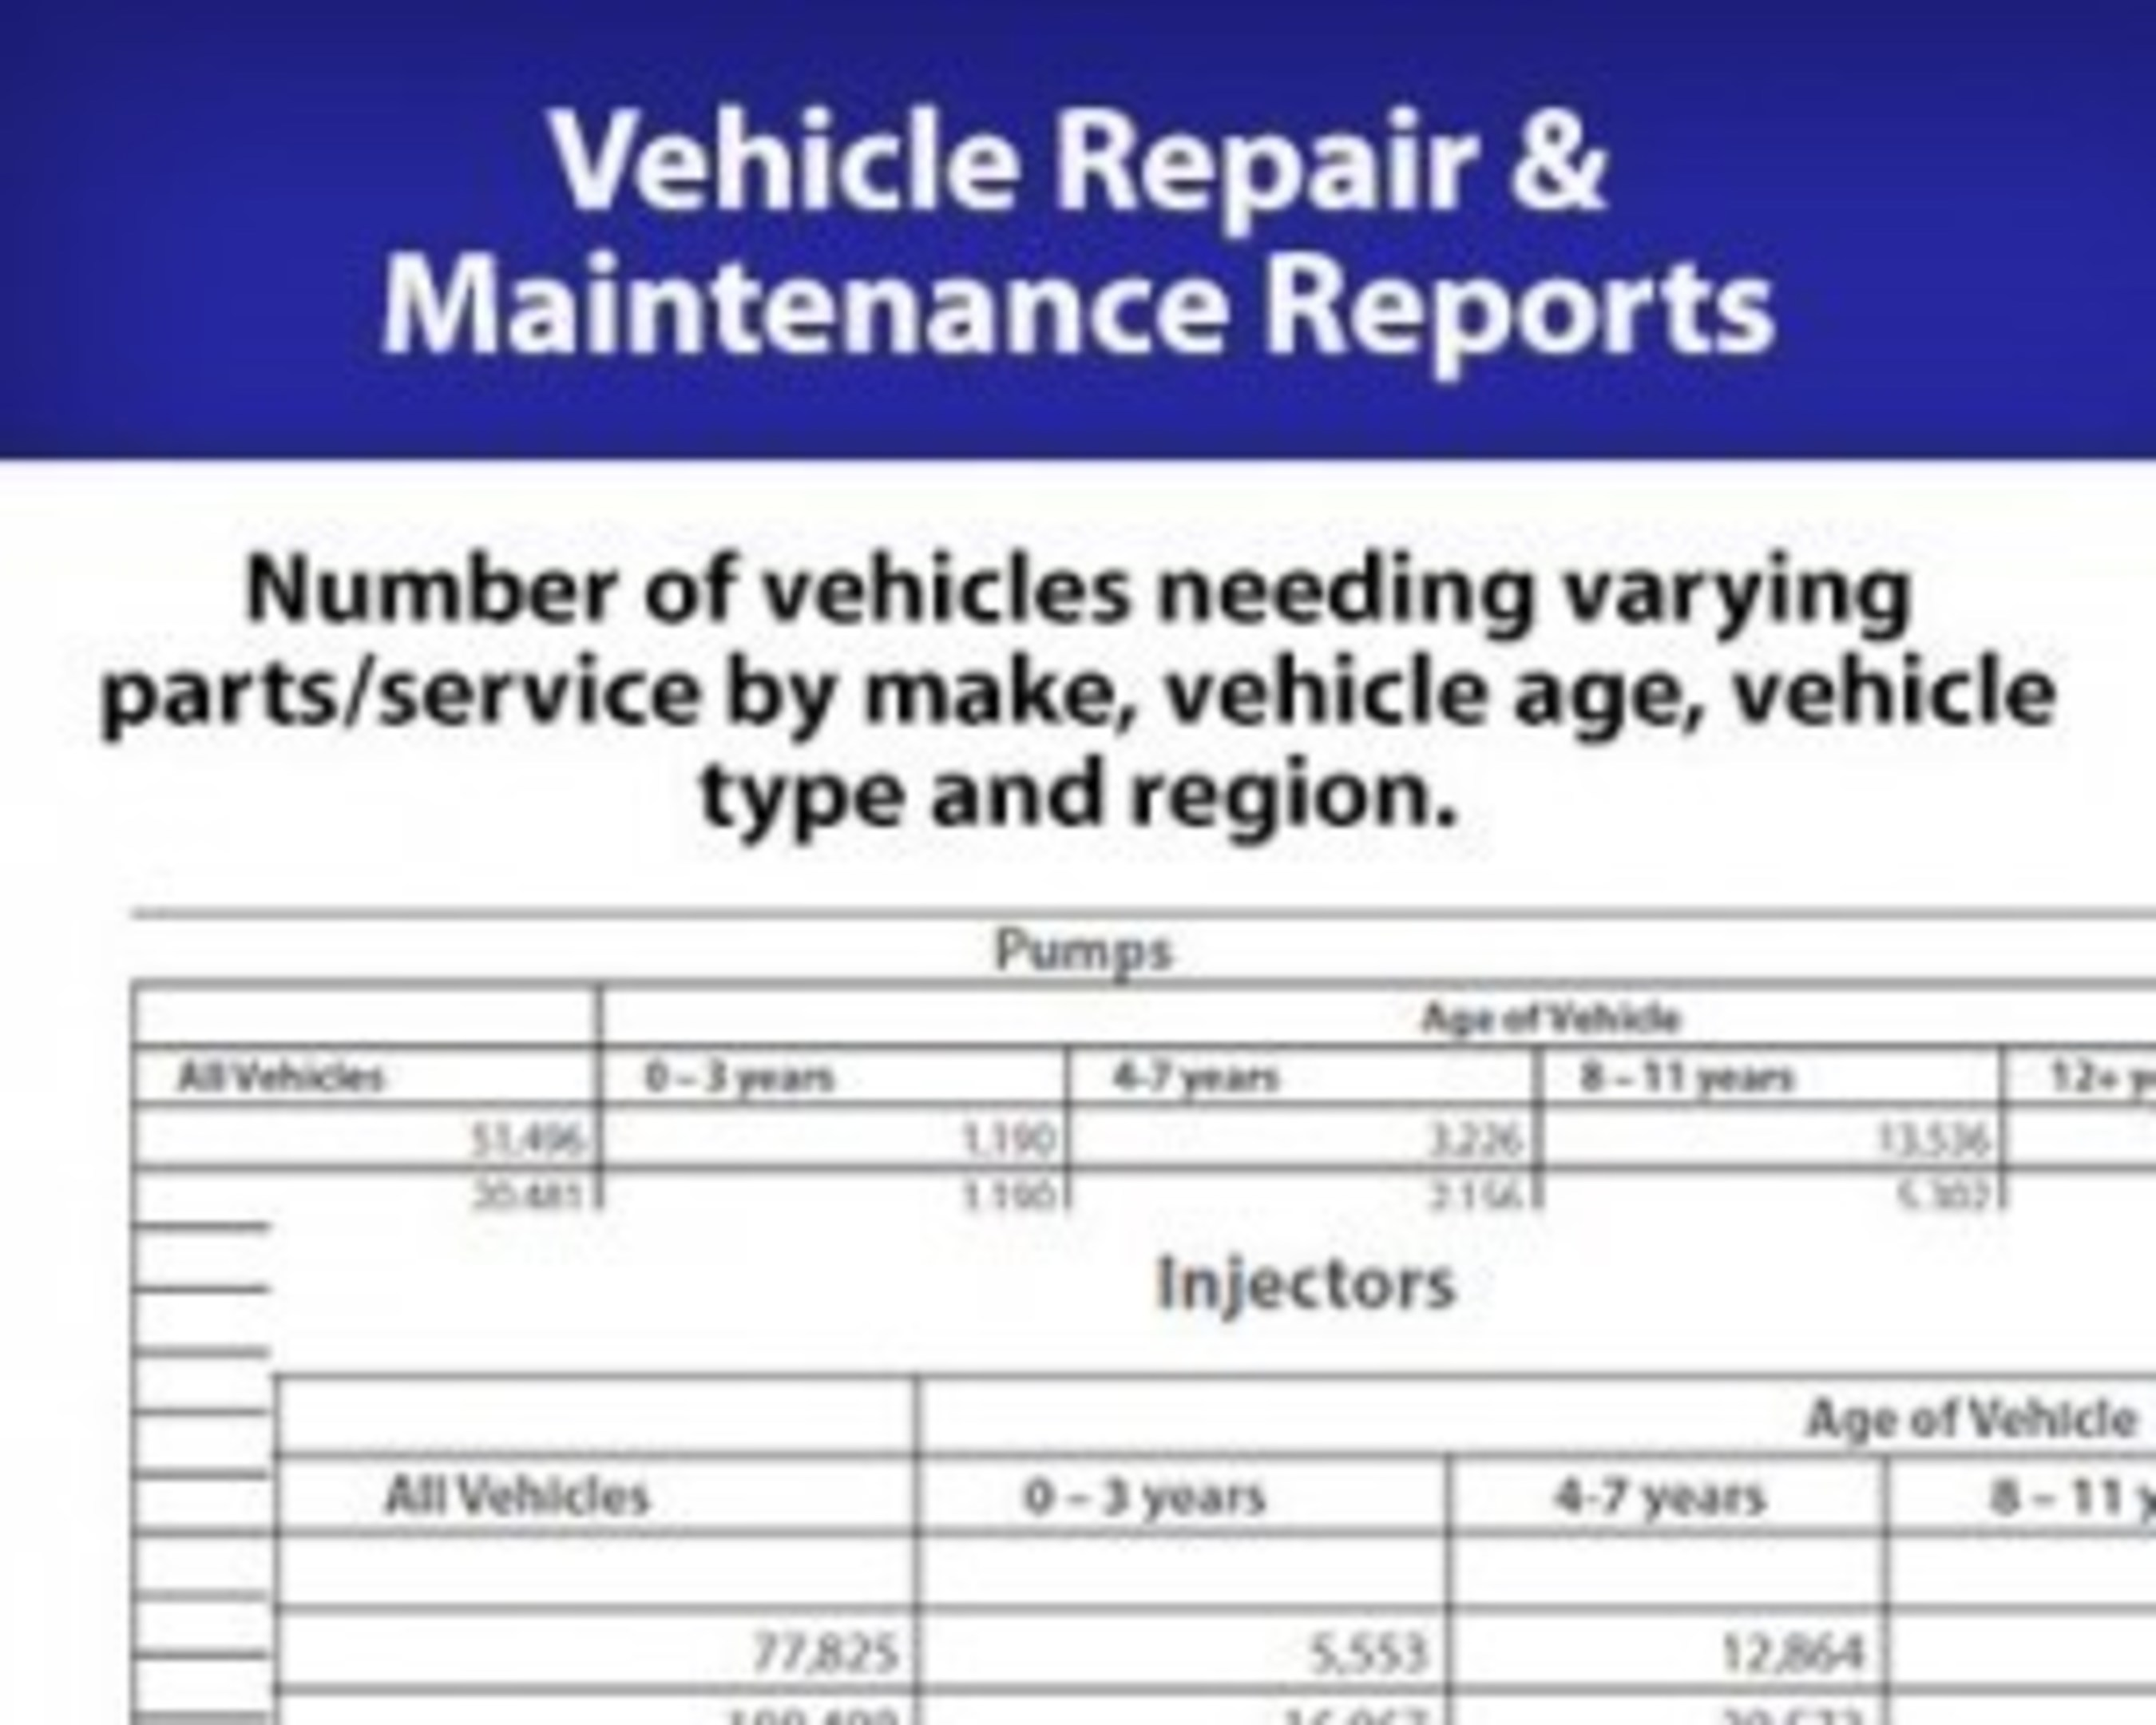 Hedges Company Vehicle Repair And Maintenance Reports Give Detailed Information On The Total Number Of Vehicles Getting Service